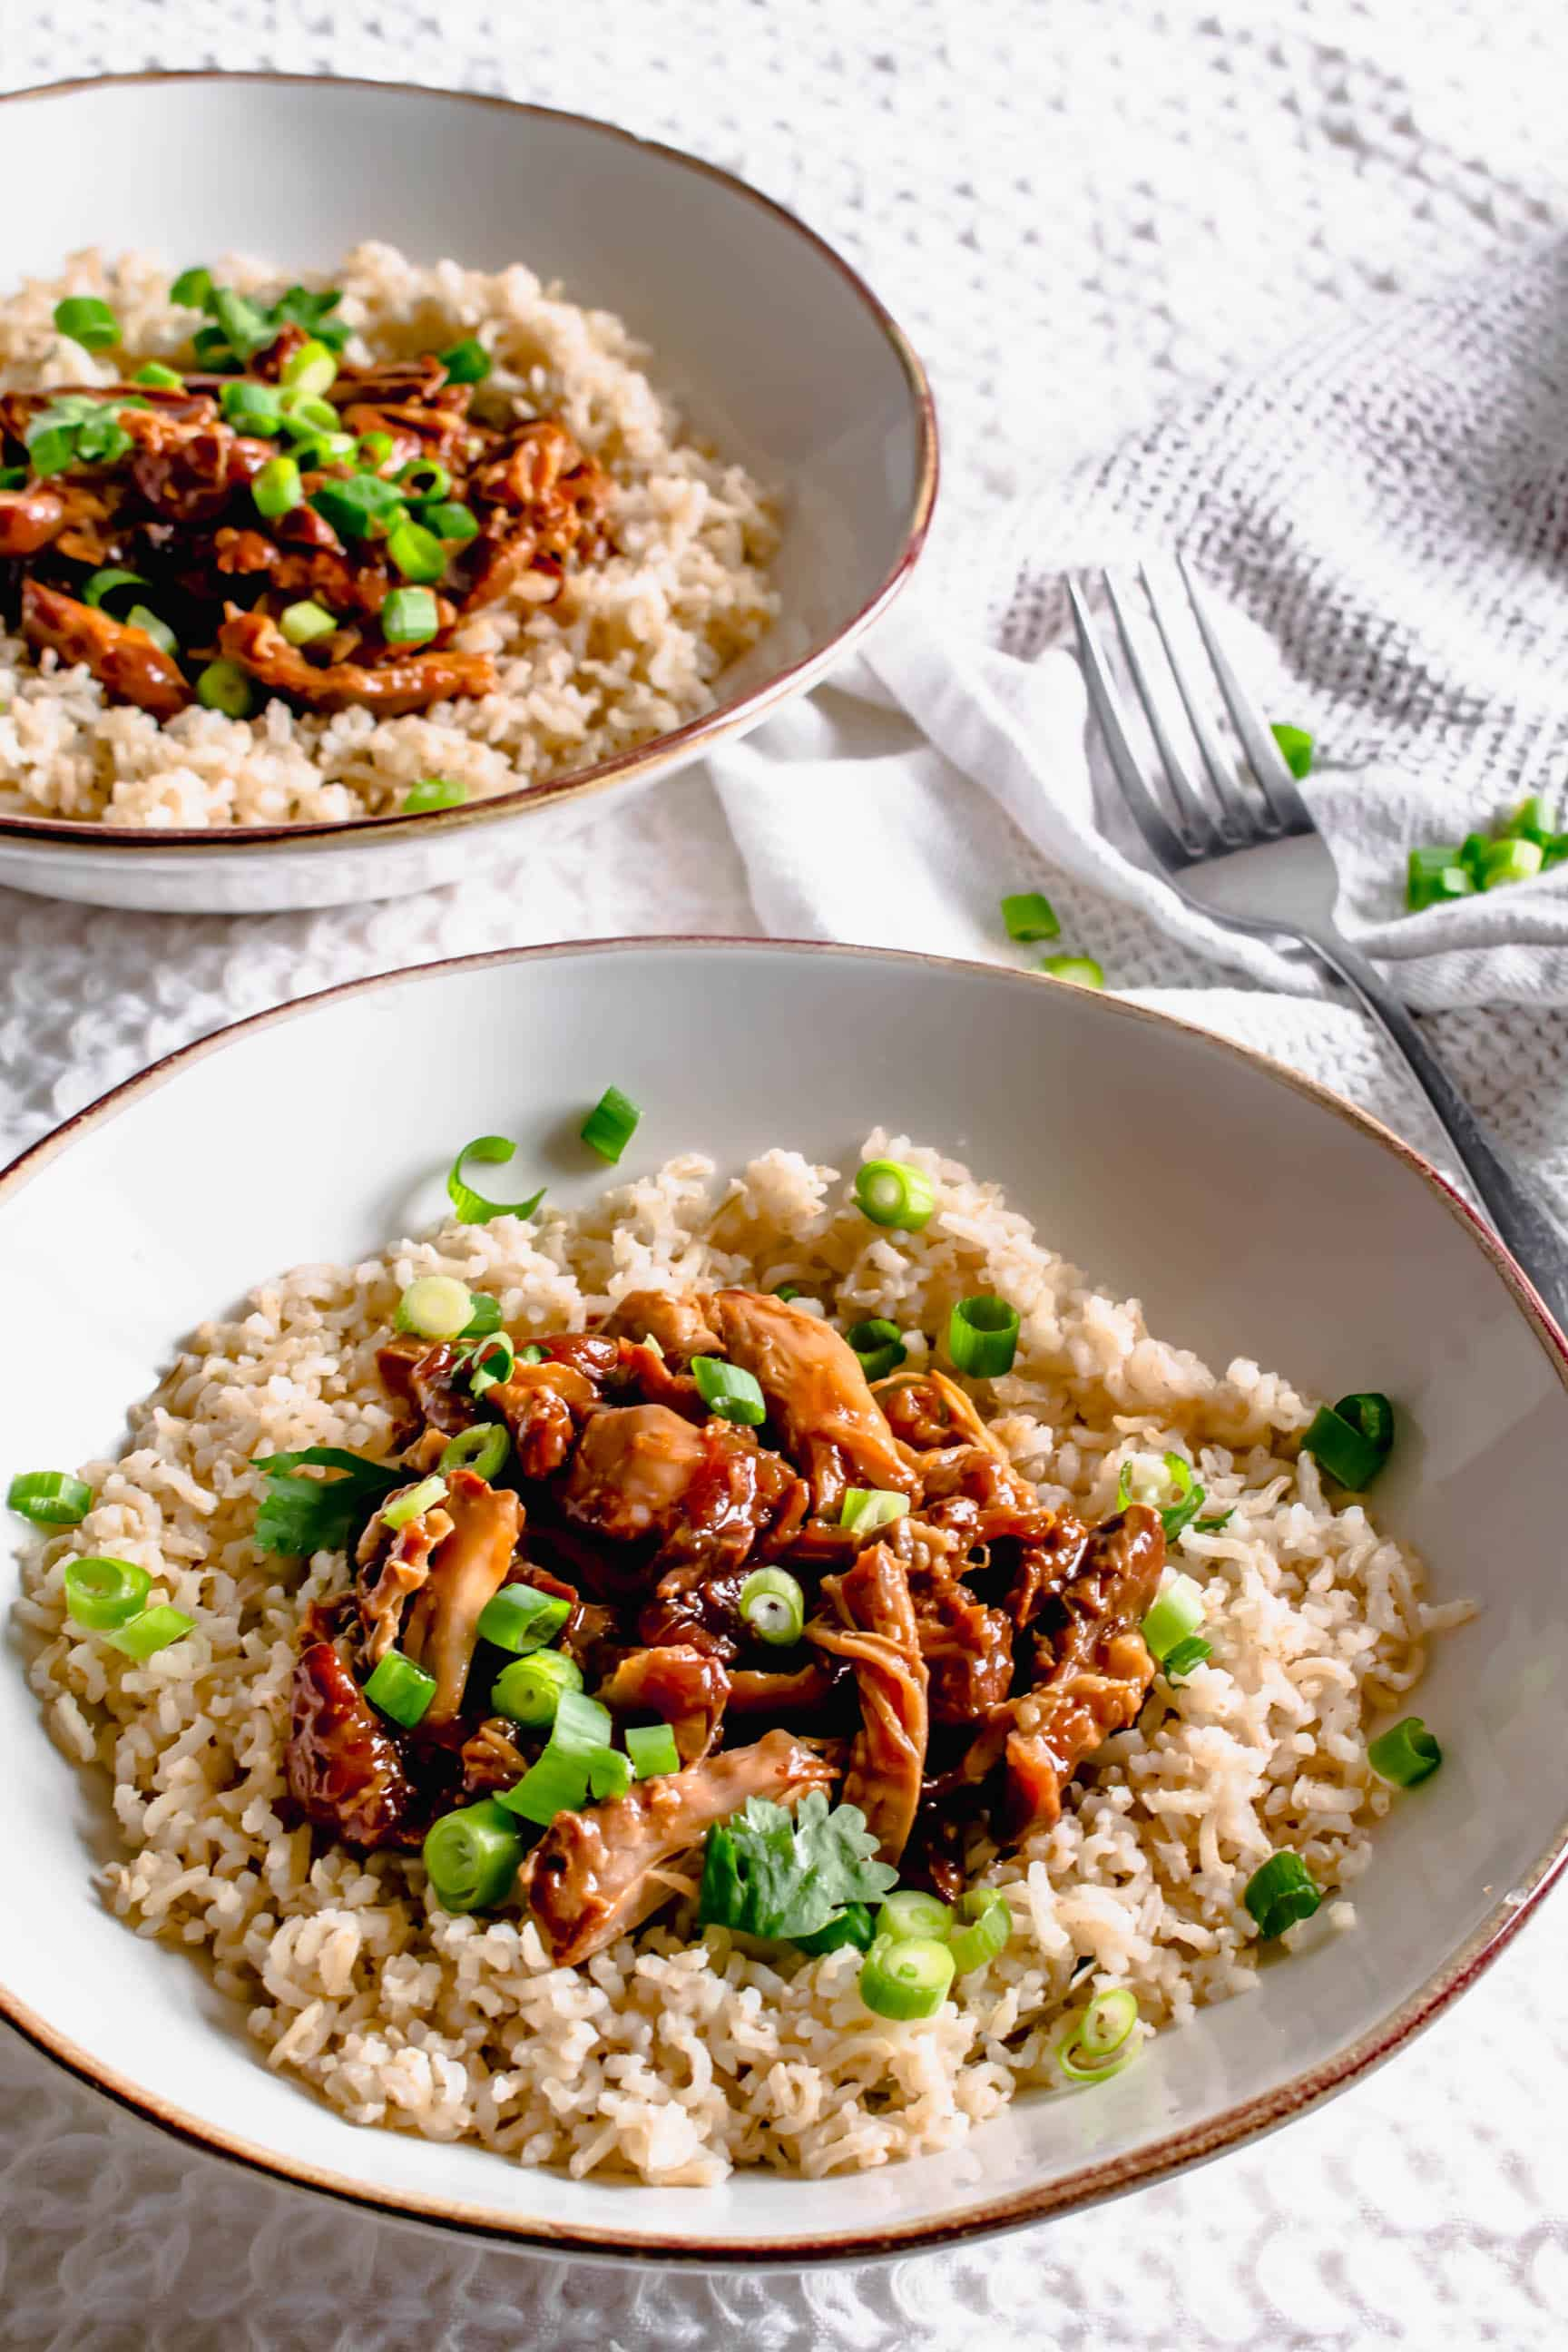 Slow cooker Teryaki Chicken Recipe | Hint of Helen